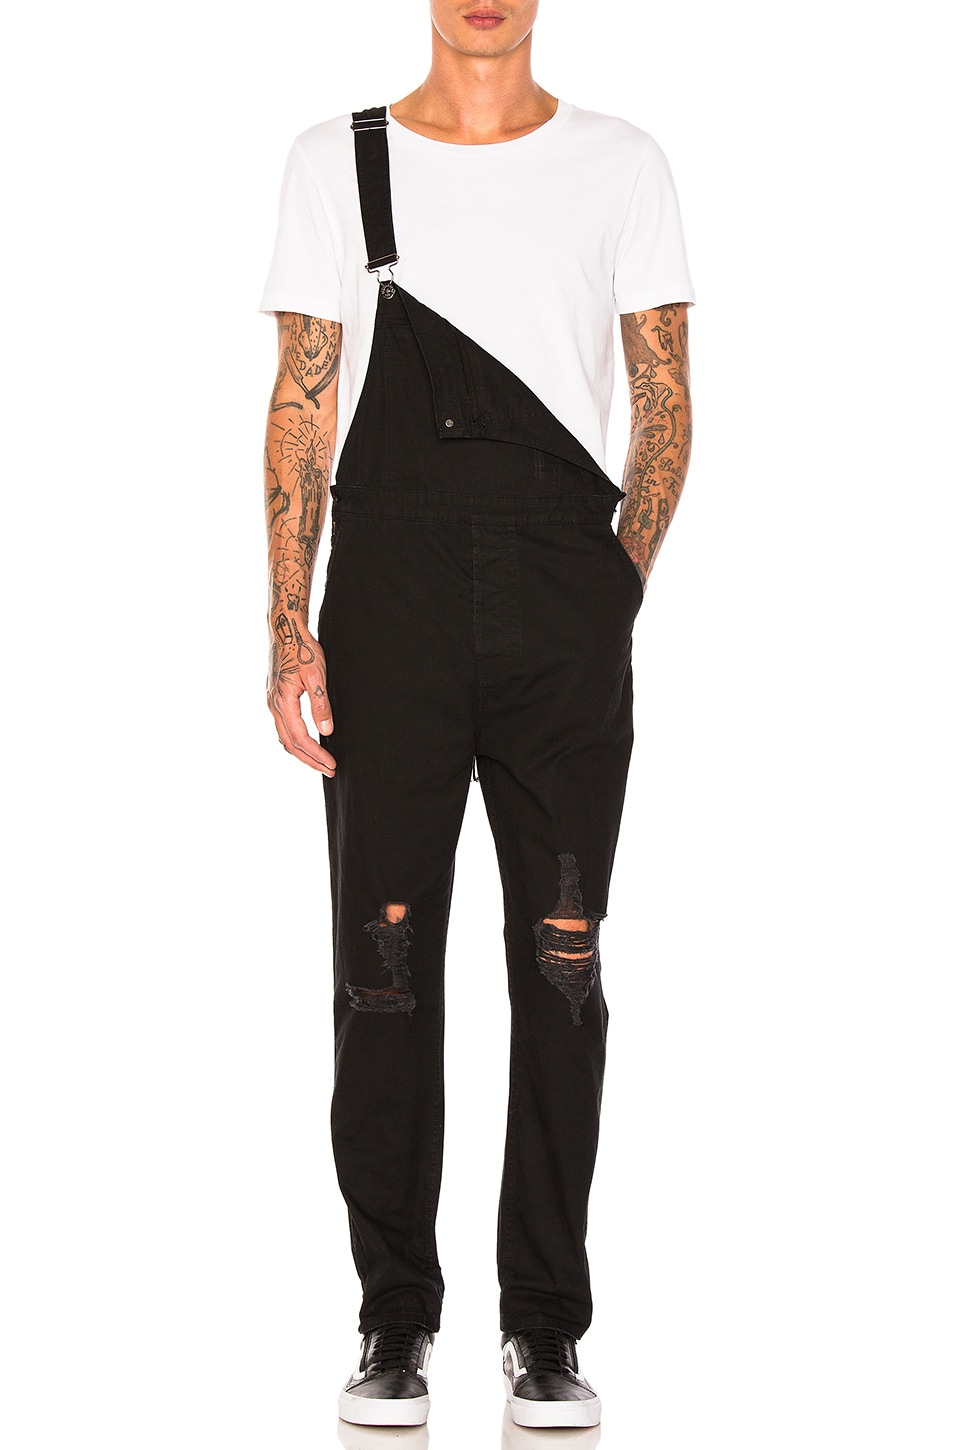 Dungarees by Scotch & Soda